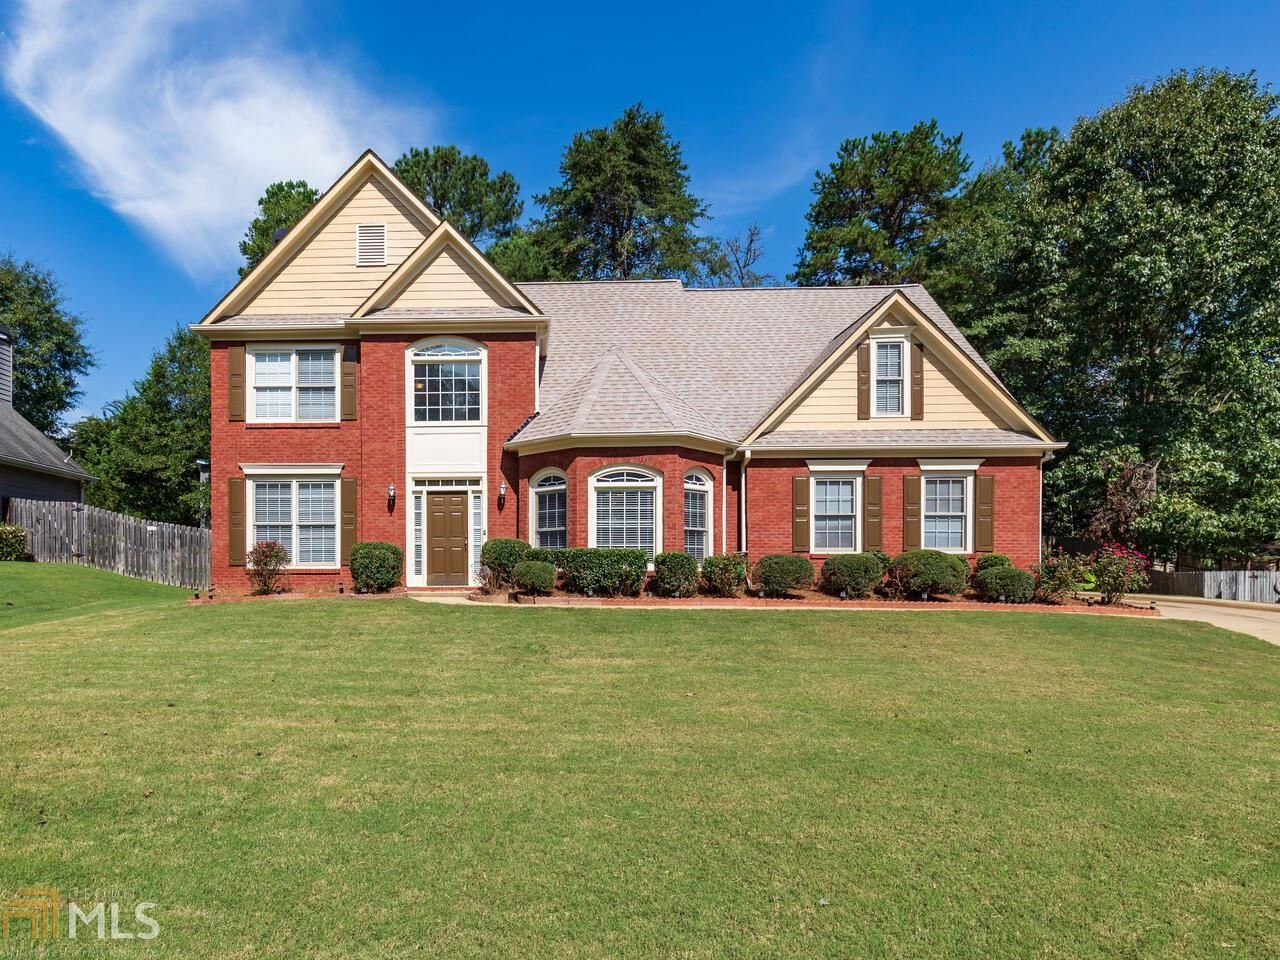 5385 Azalea Crest Ln, Sugar Hill, GA 30518 - MLS#: 8863534